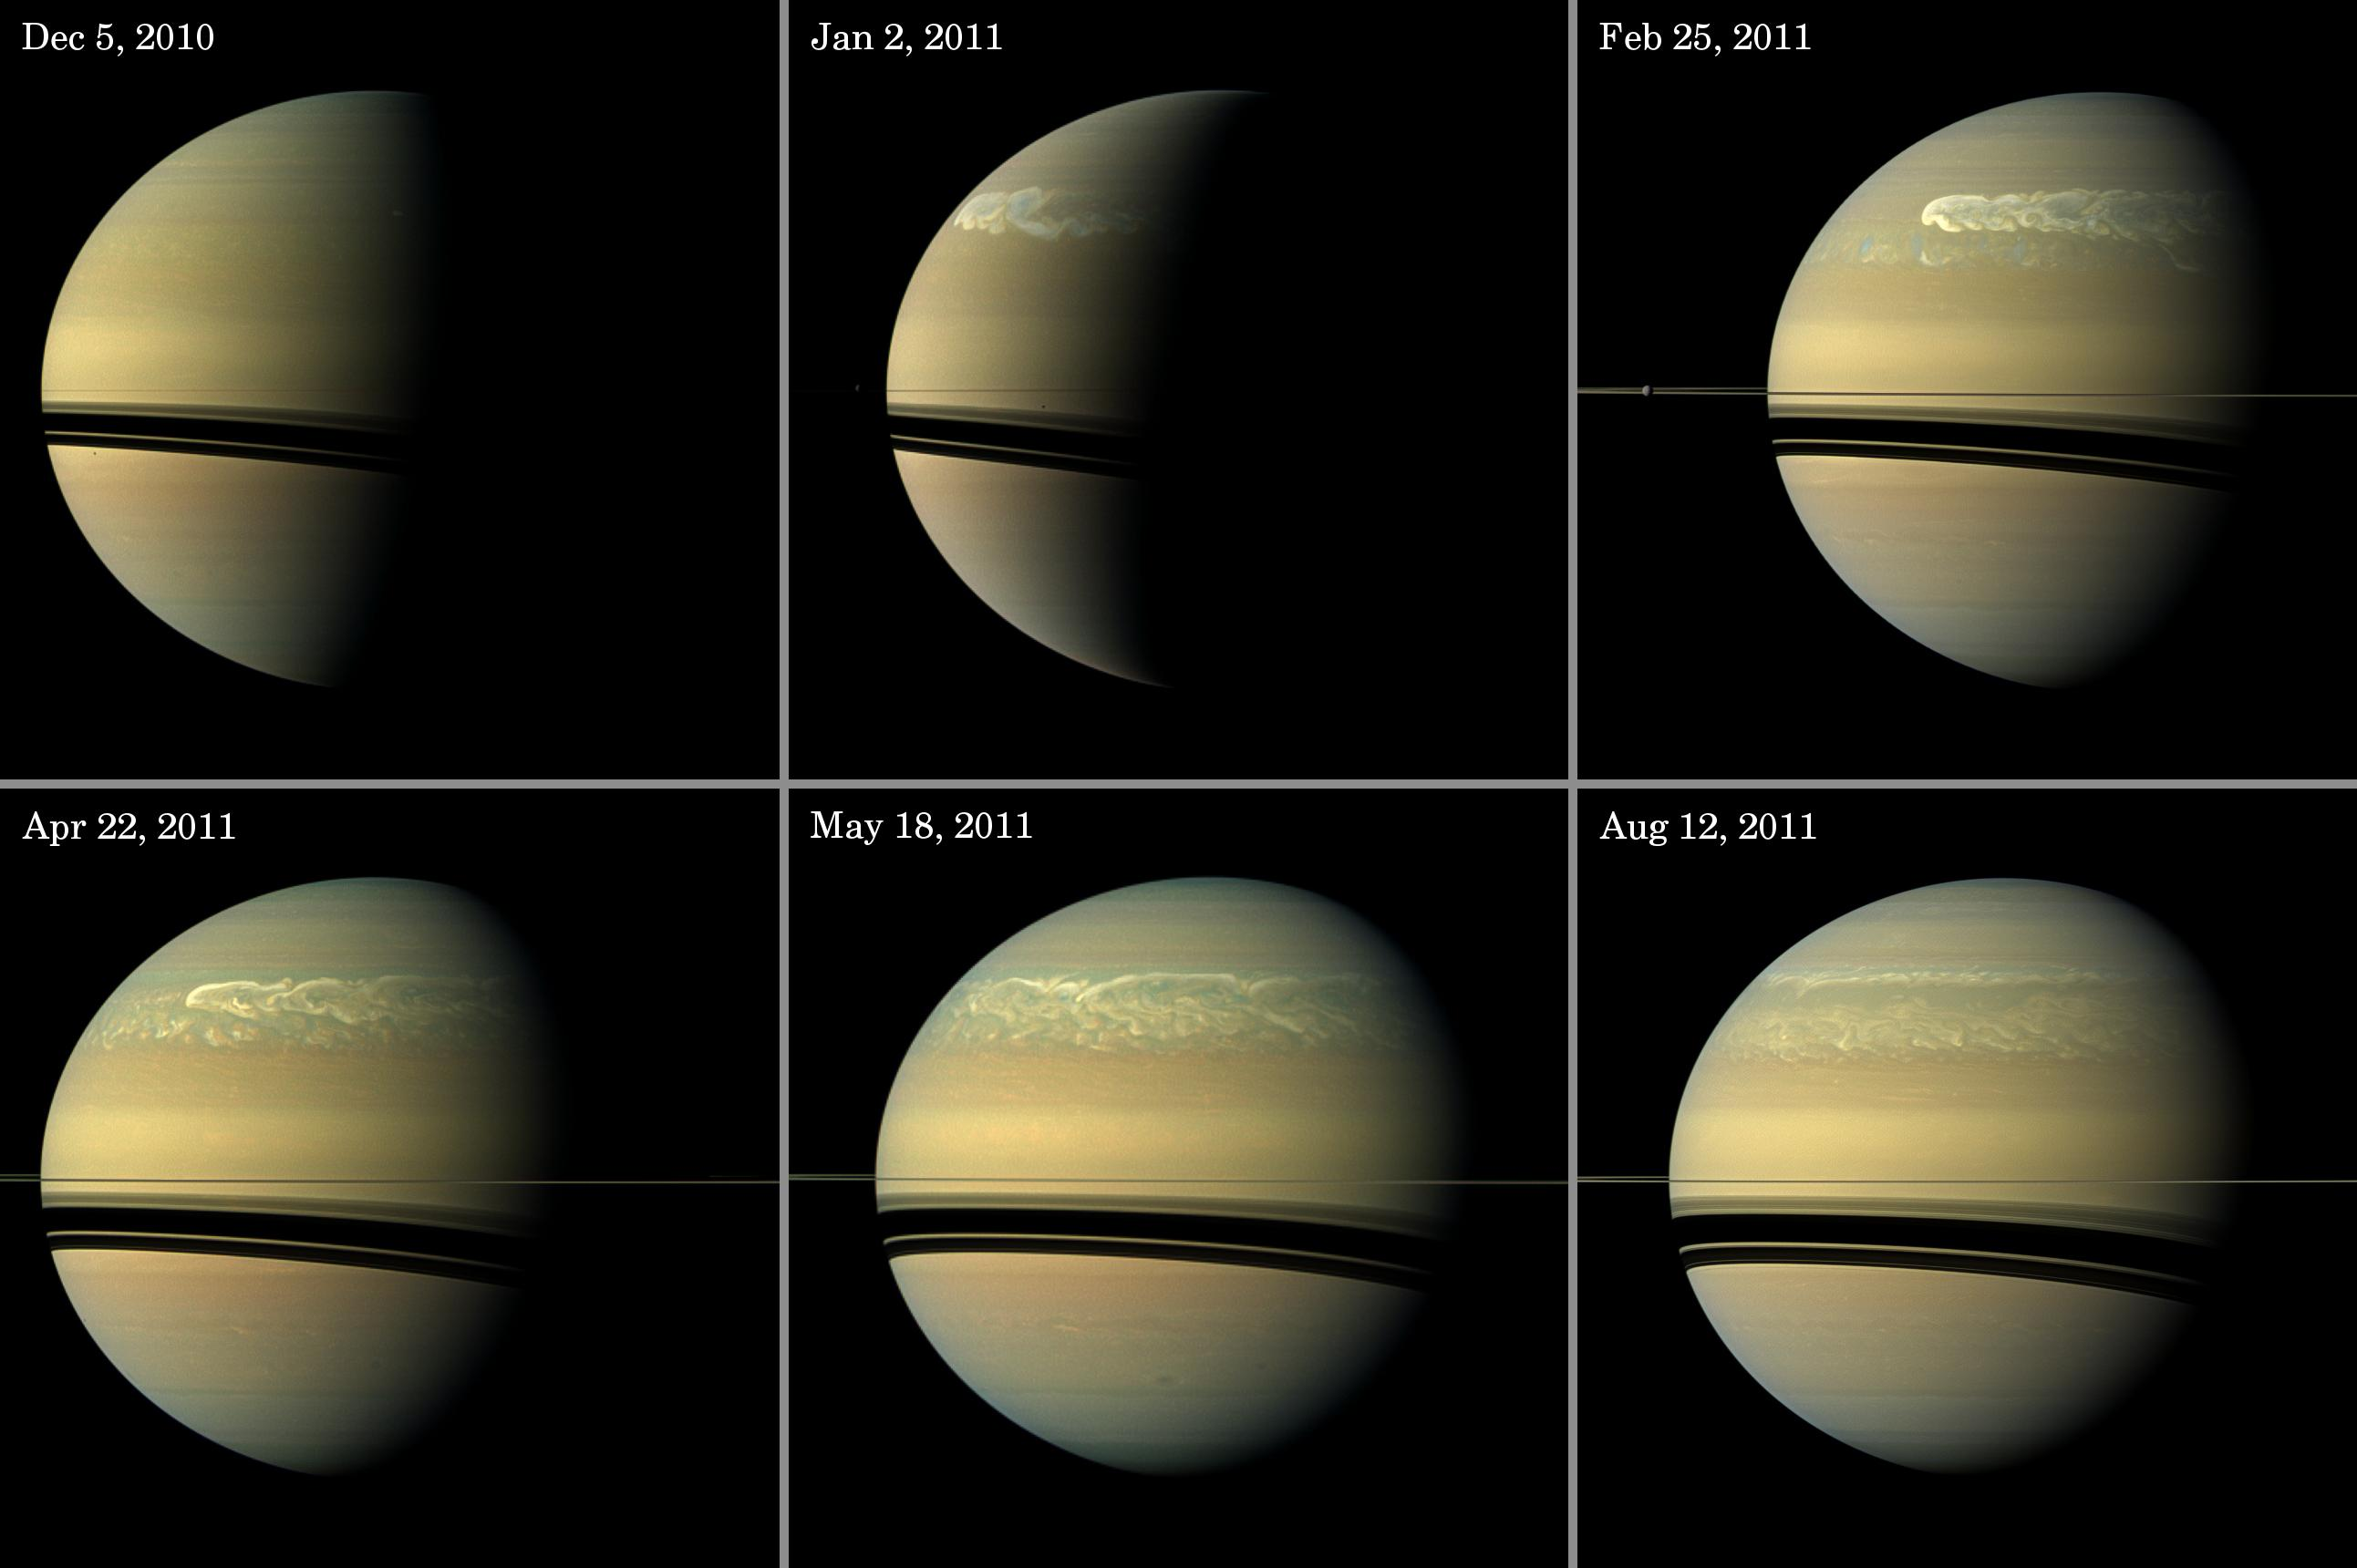 Sequence of images showing massive band of storms encircling Saturn.